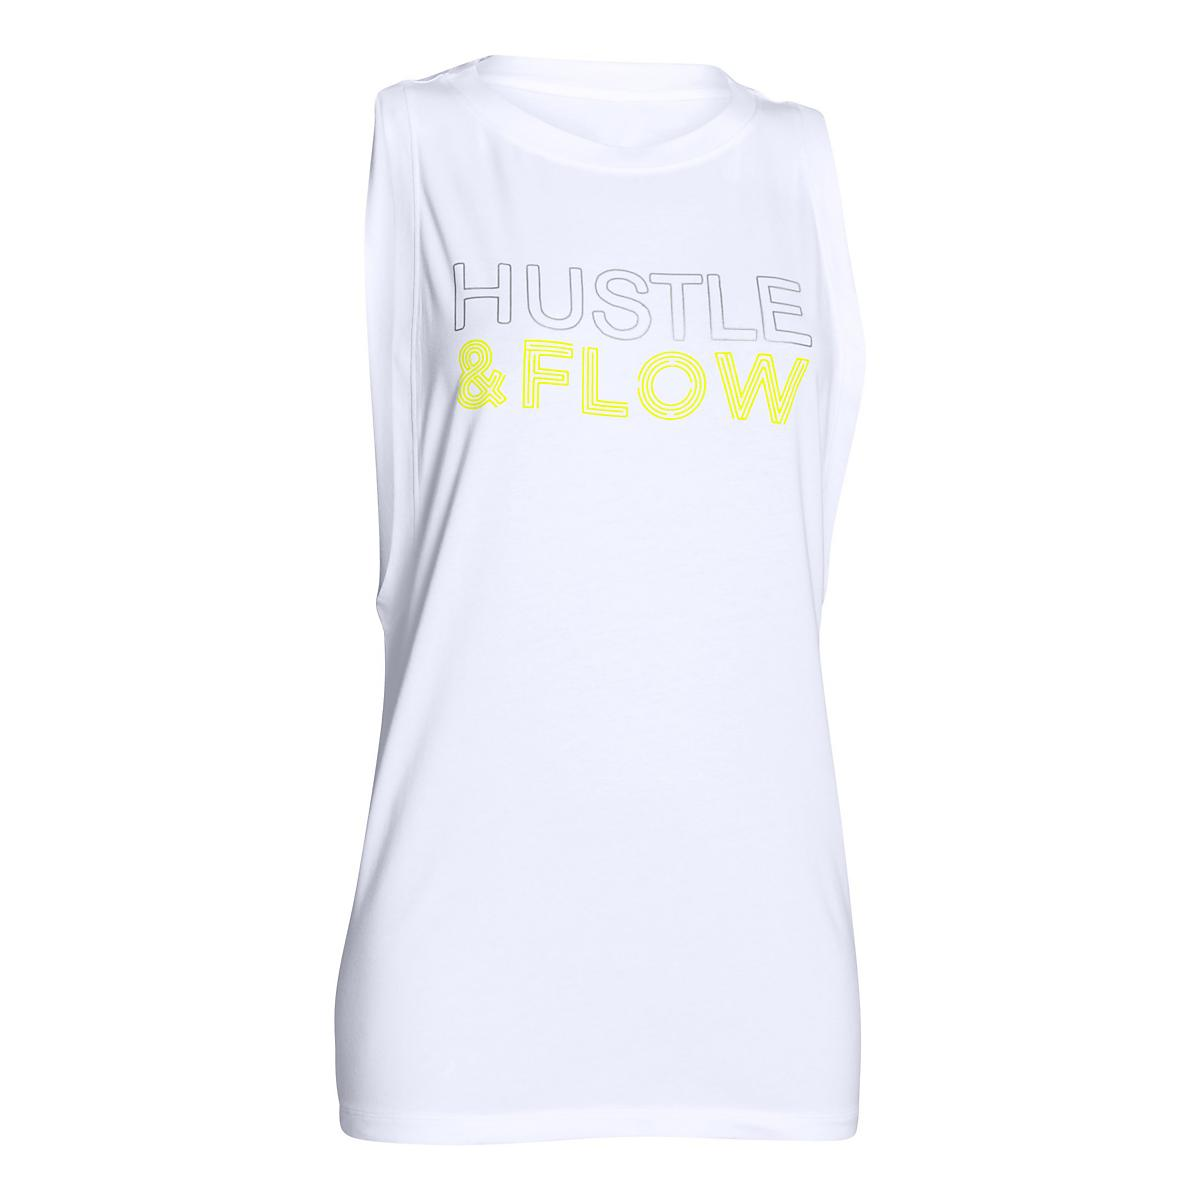 Women's Under Armour�Studio Hustle and Flow Muscle Tank